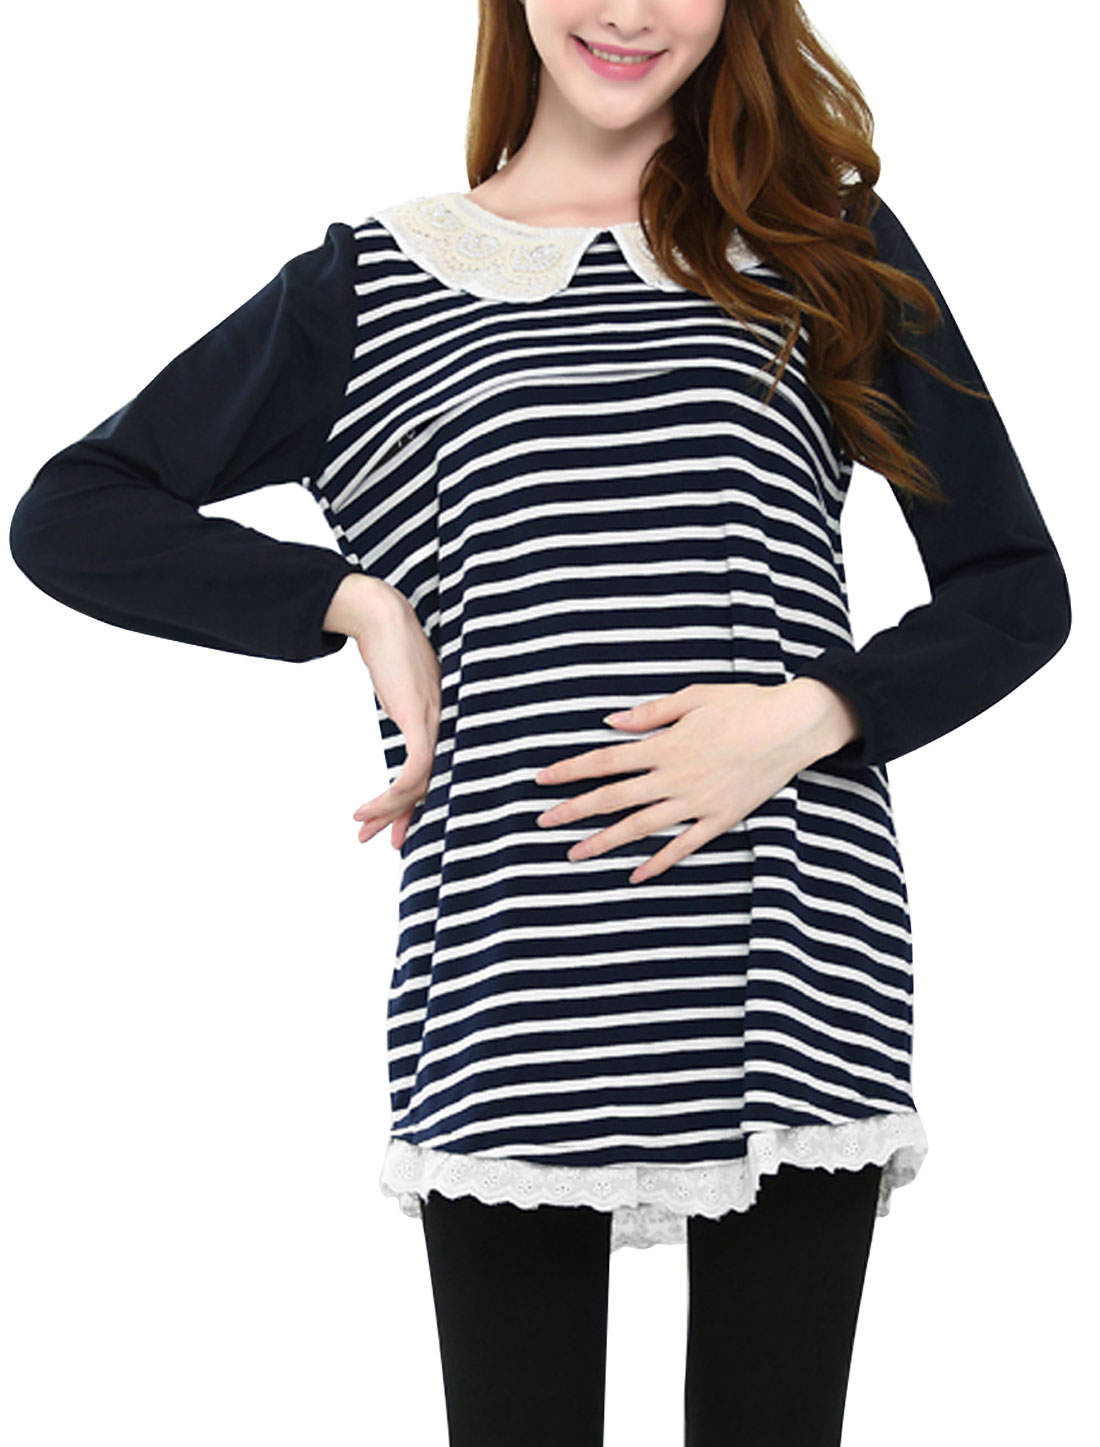 XK19 Maternity Peter Pan Collar Stripes Pattern Casual Tunic Top Navy Blue L/M (US 8)